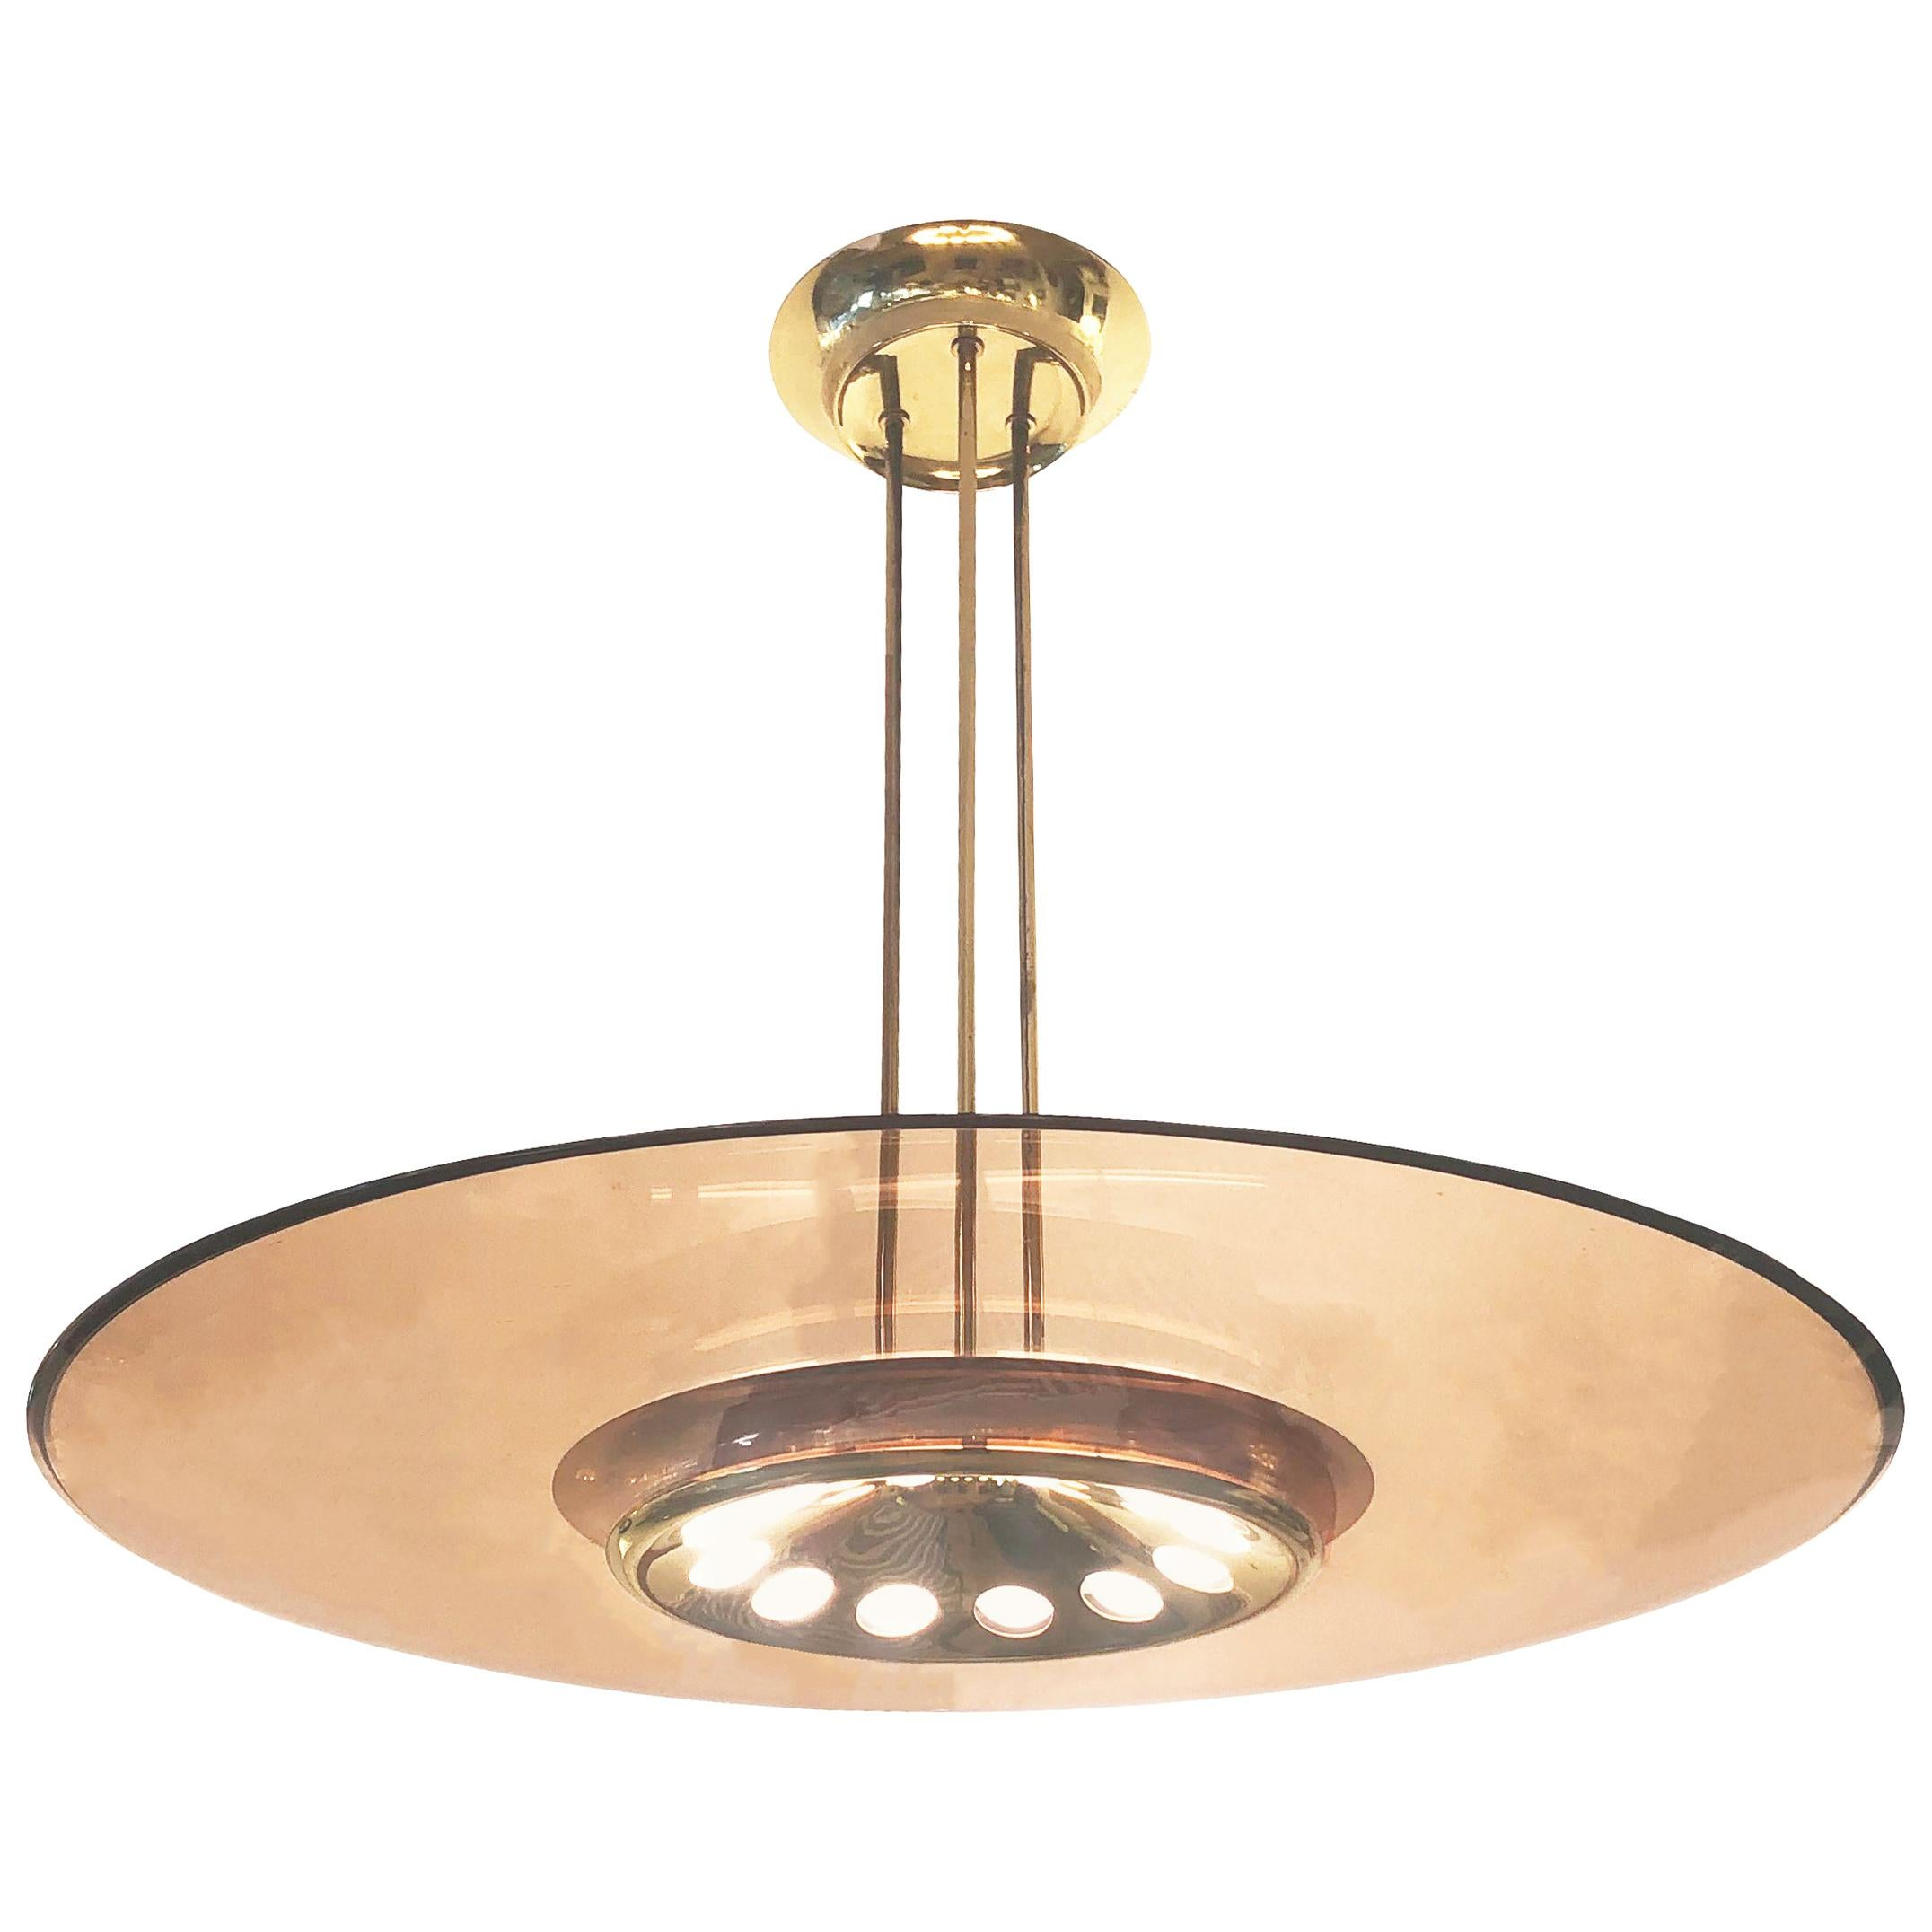 Fontana Arte Ceiling Light Model 1508 by Max Ingrand